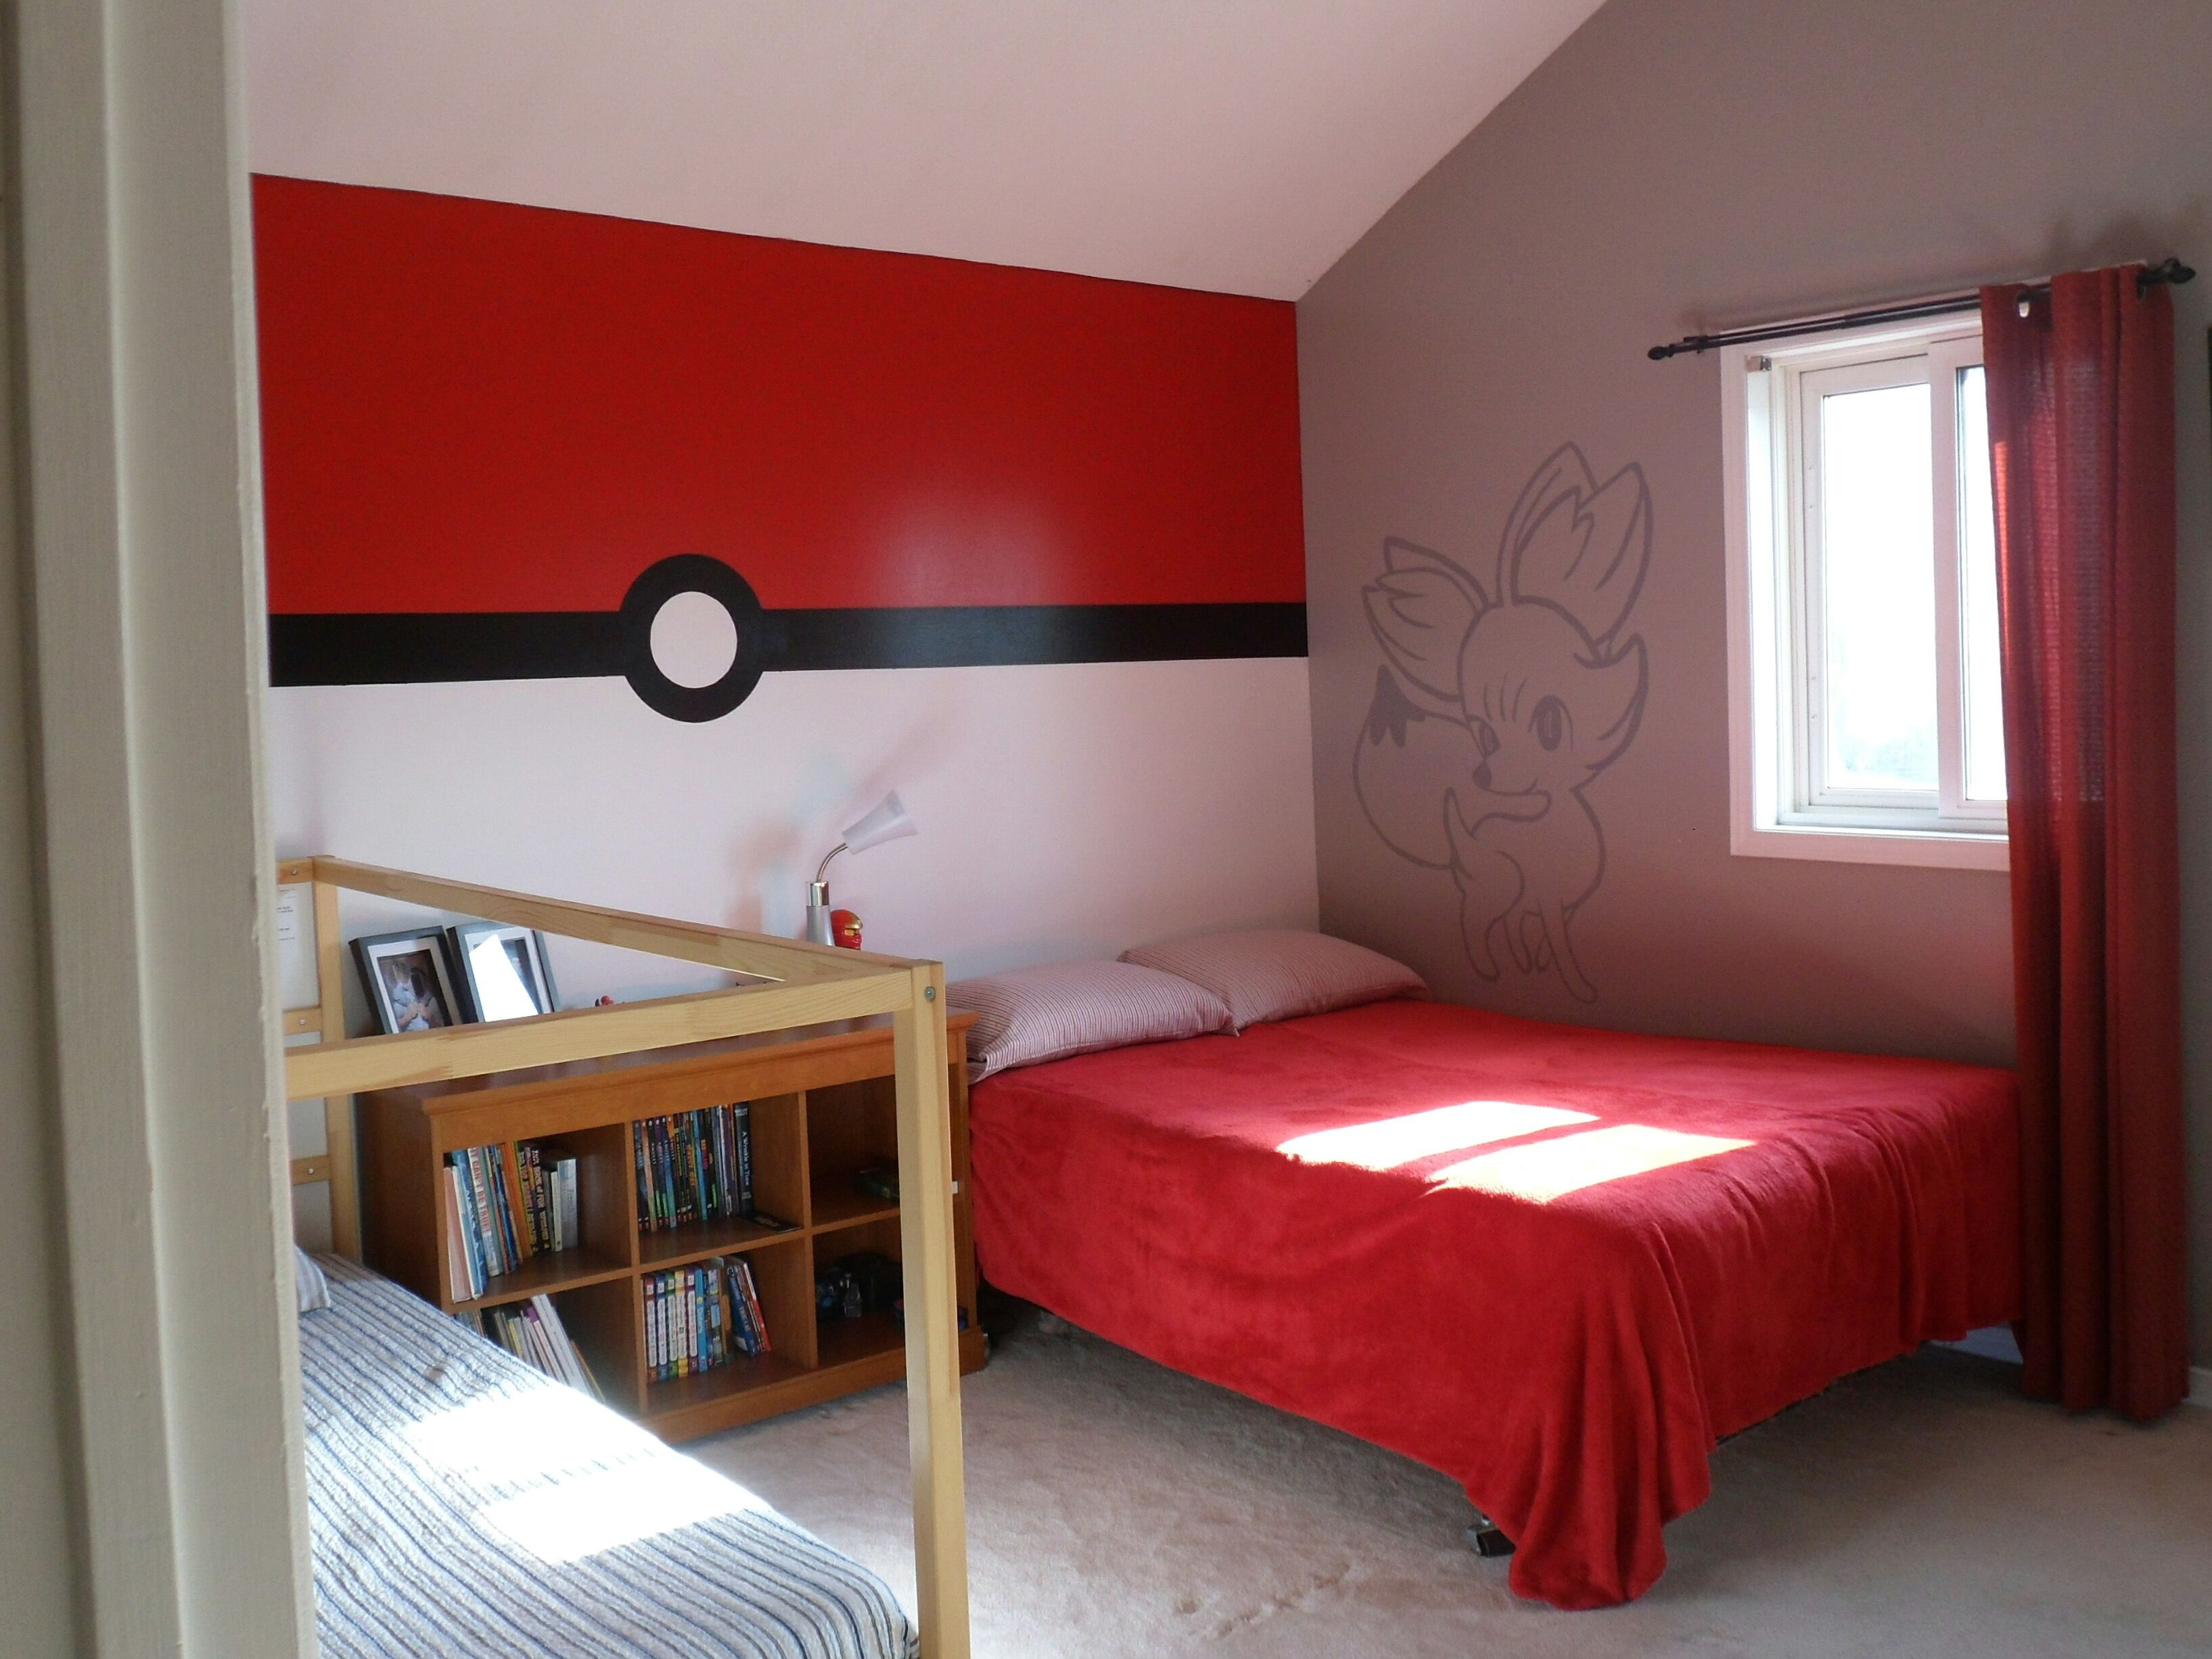 Bedroom Designs Outline pokemon bedroom - pokeball wall | pokemon bedroom | pinterest